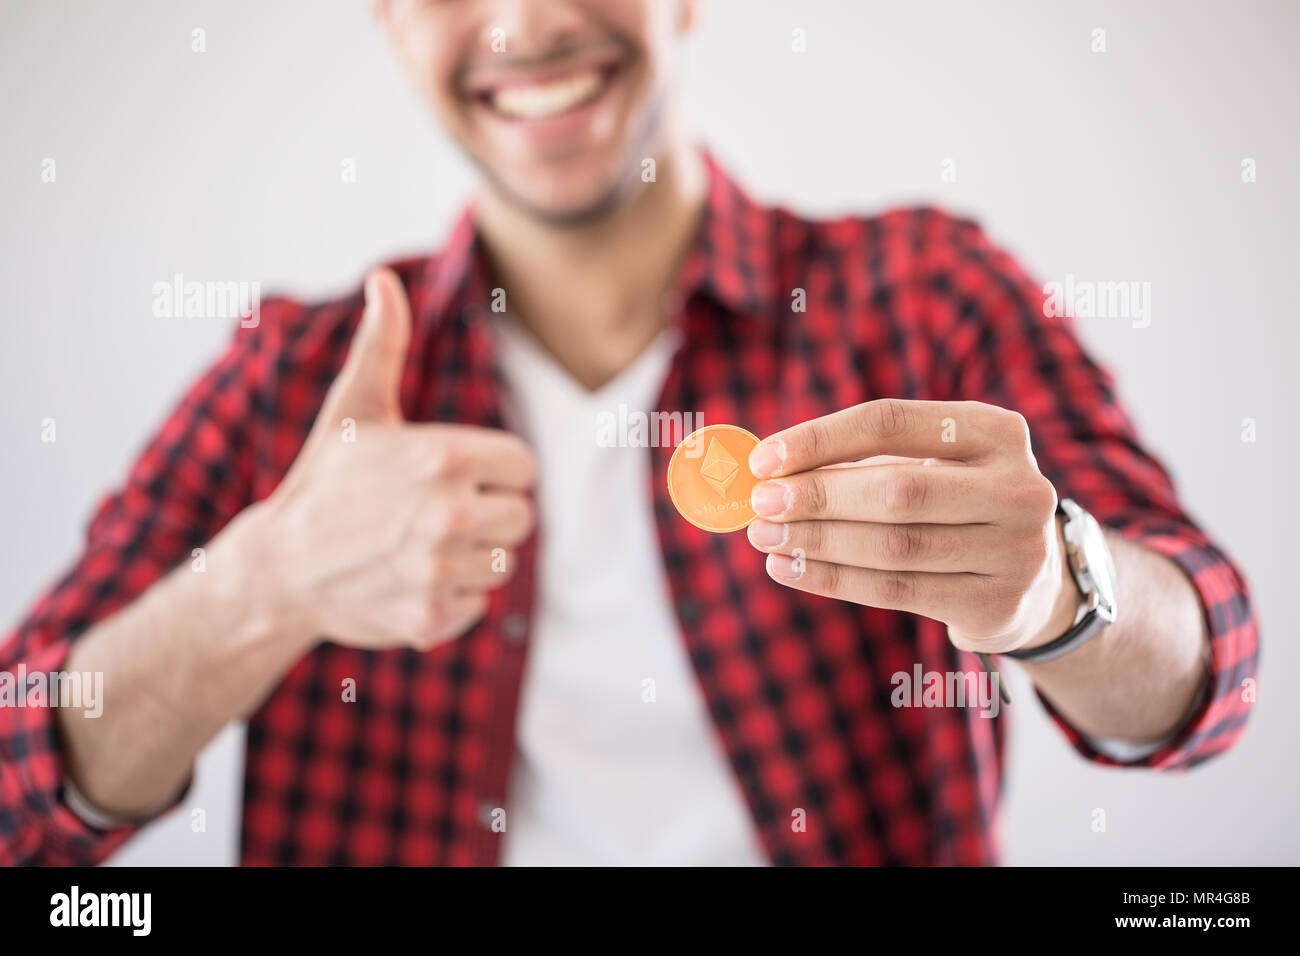 Happy investor with gold cryptocurrency coin - digital money concept - Stock Image